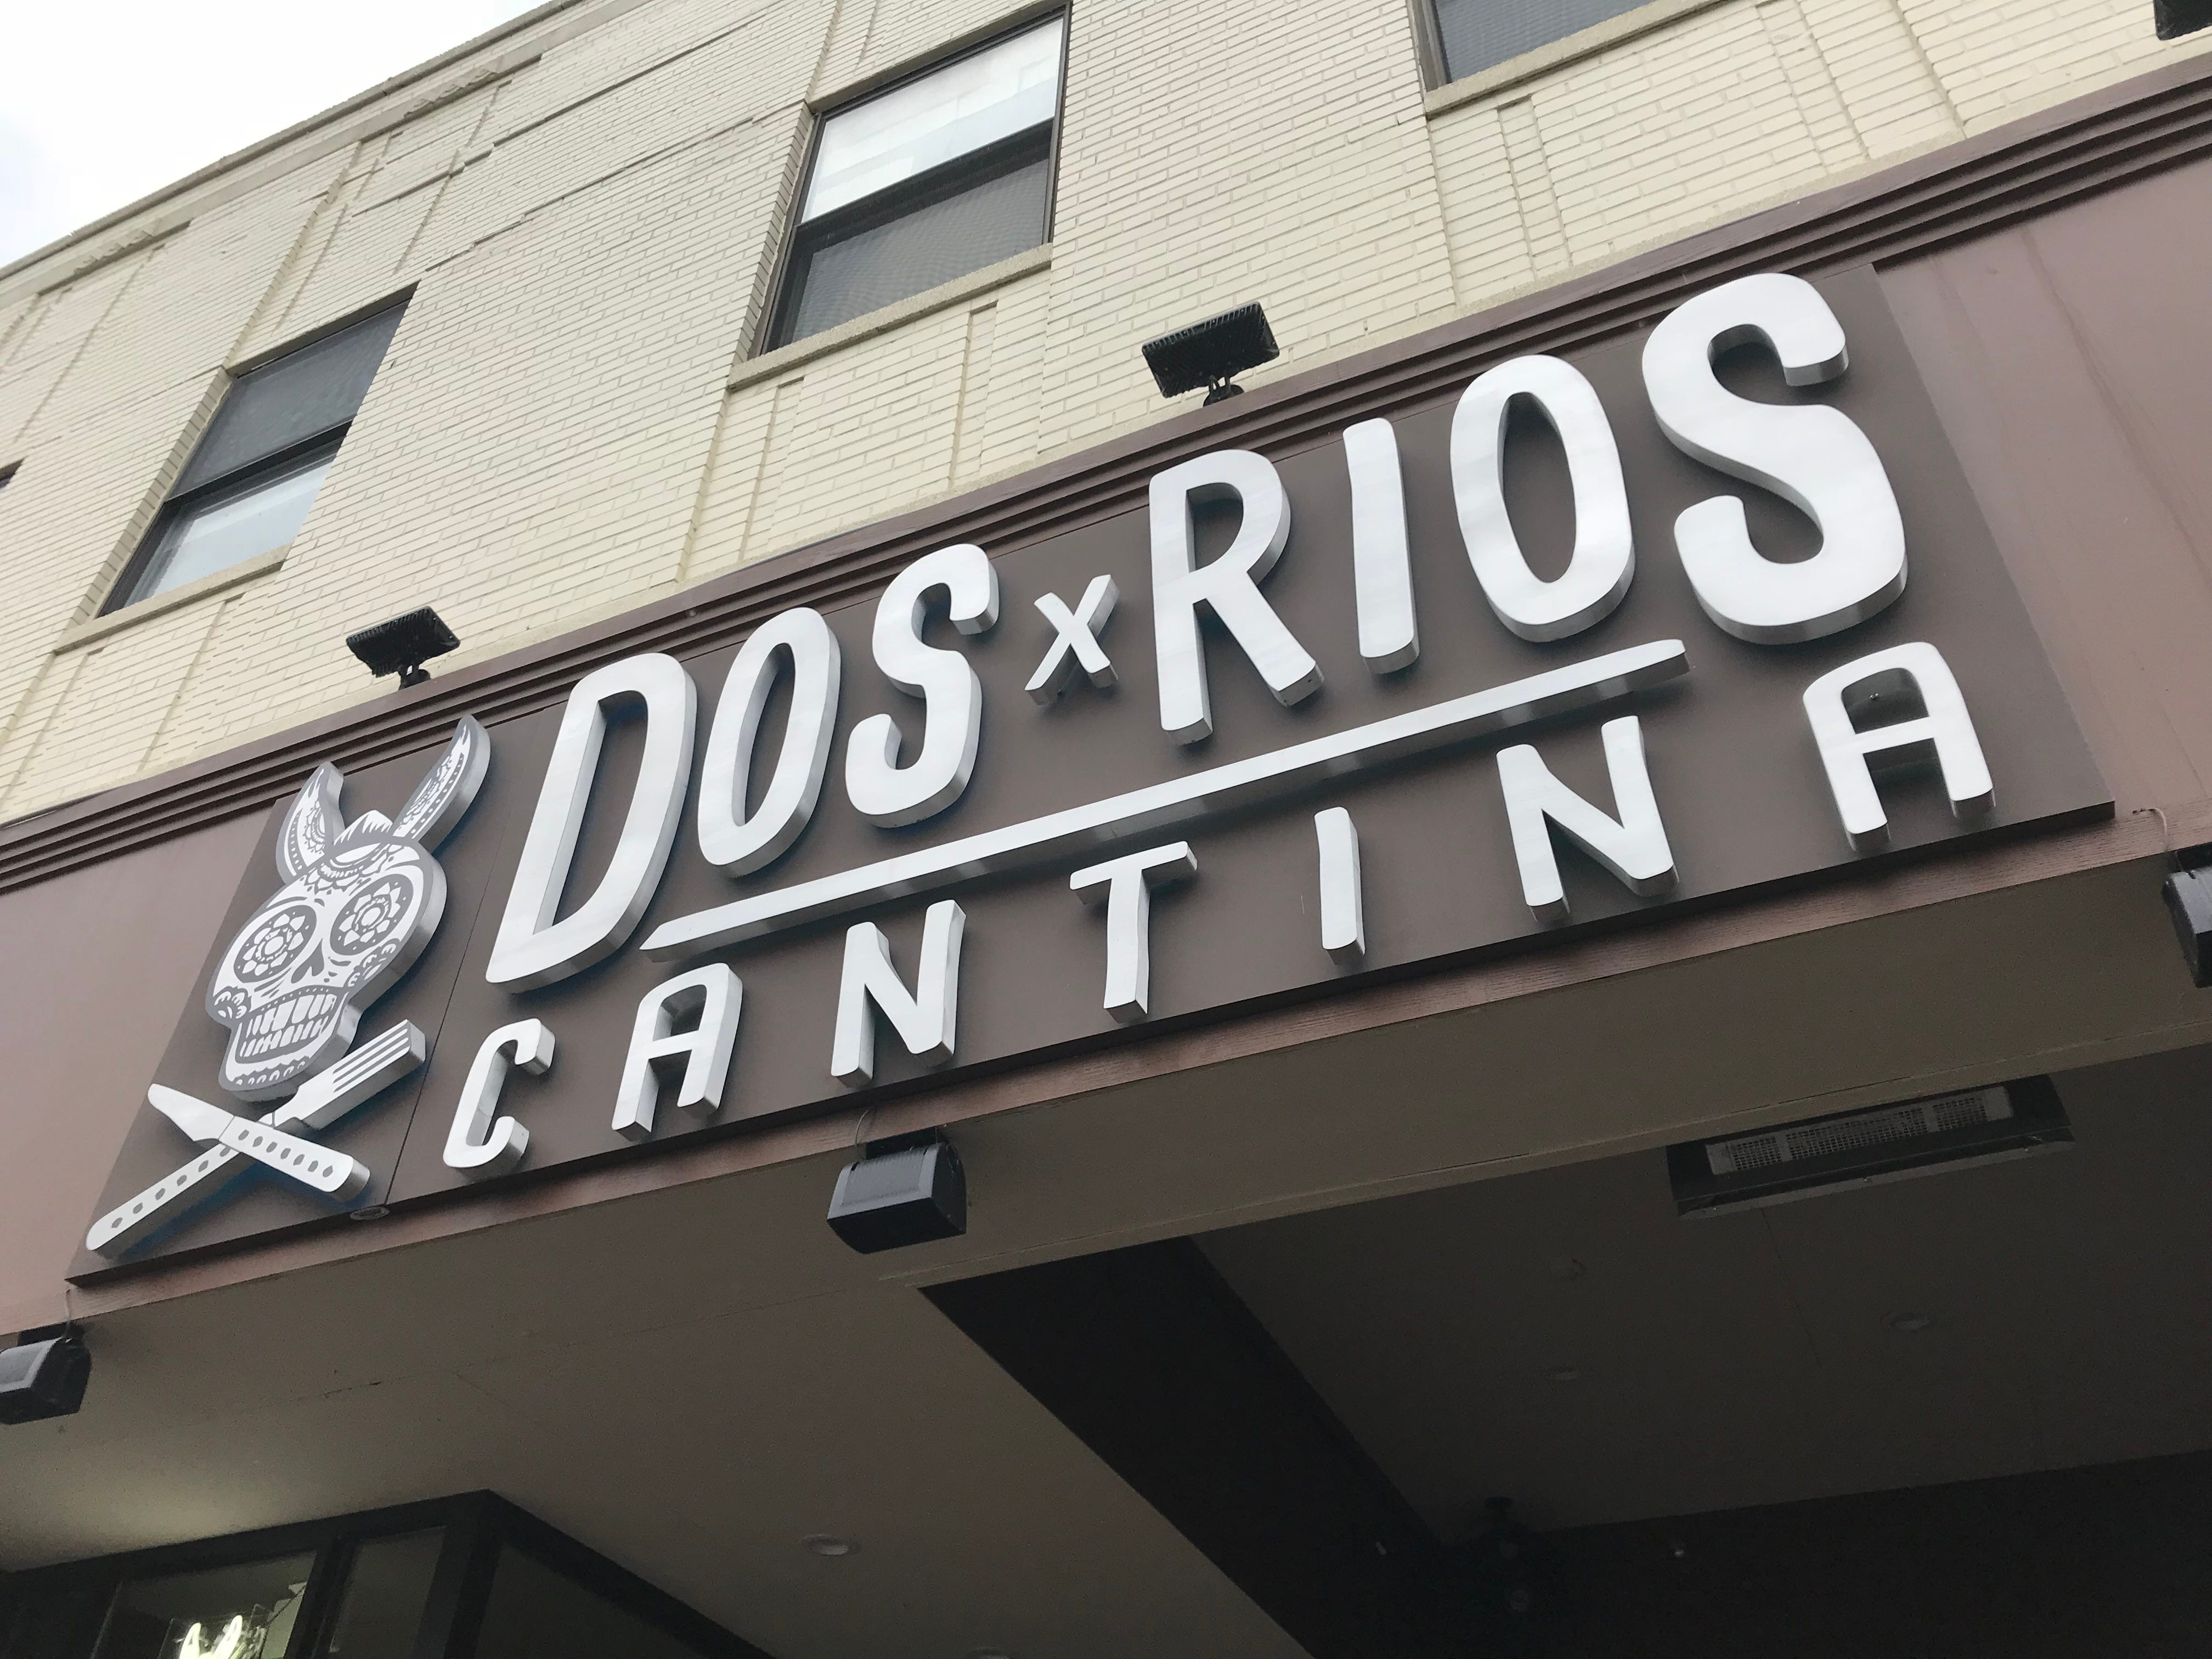 Dos Rios Cantina is located on 60 Court Street in Binghamton.